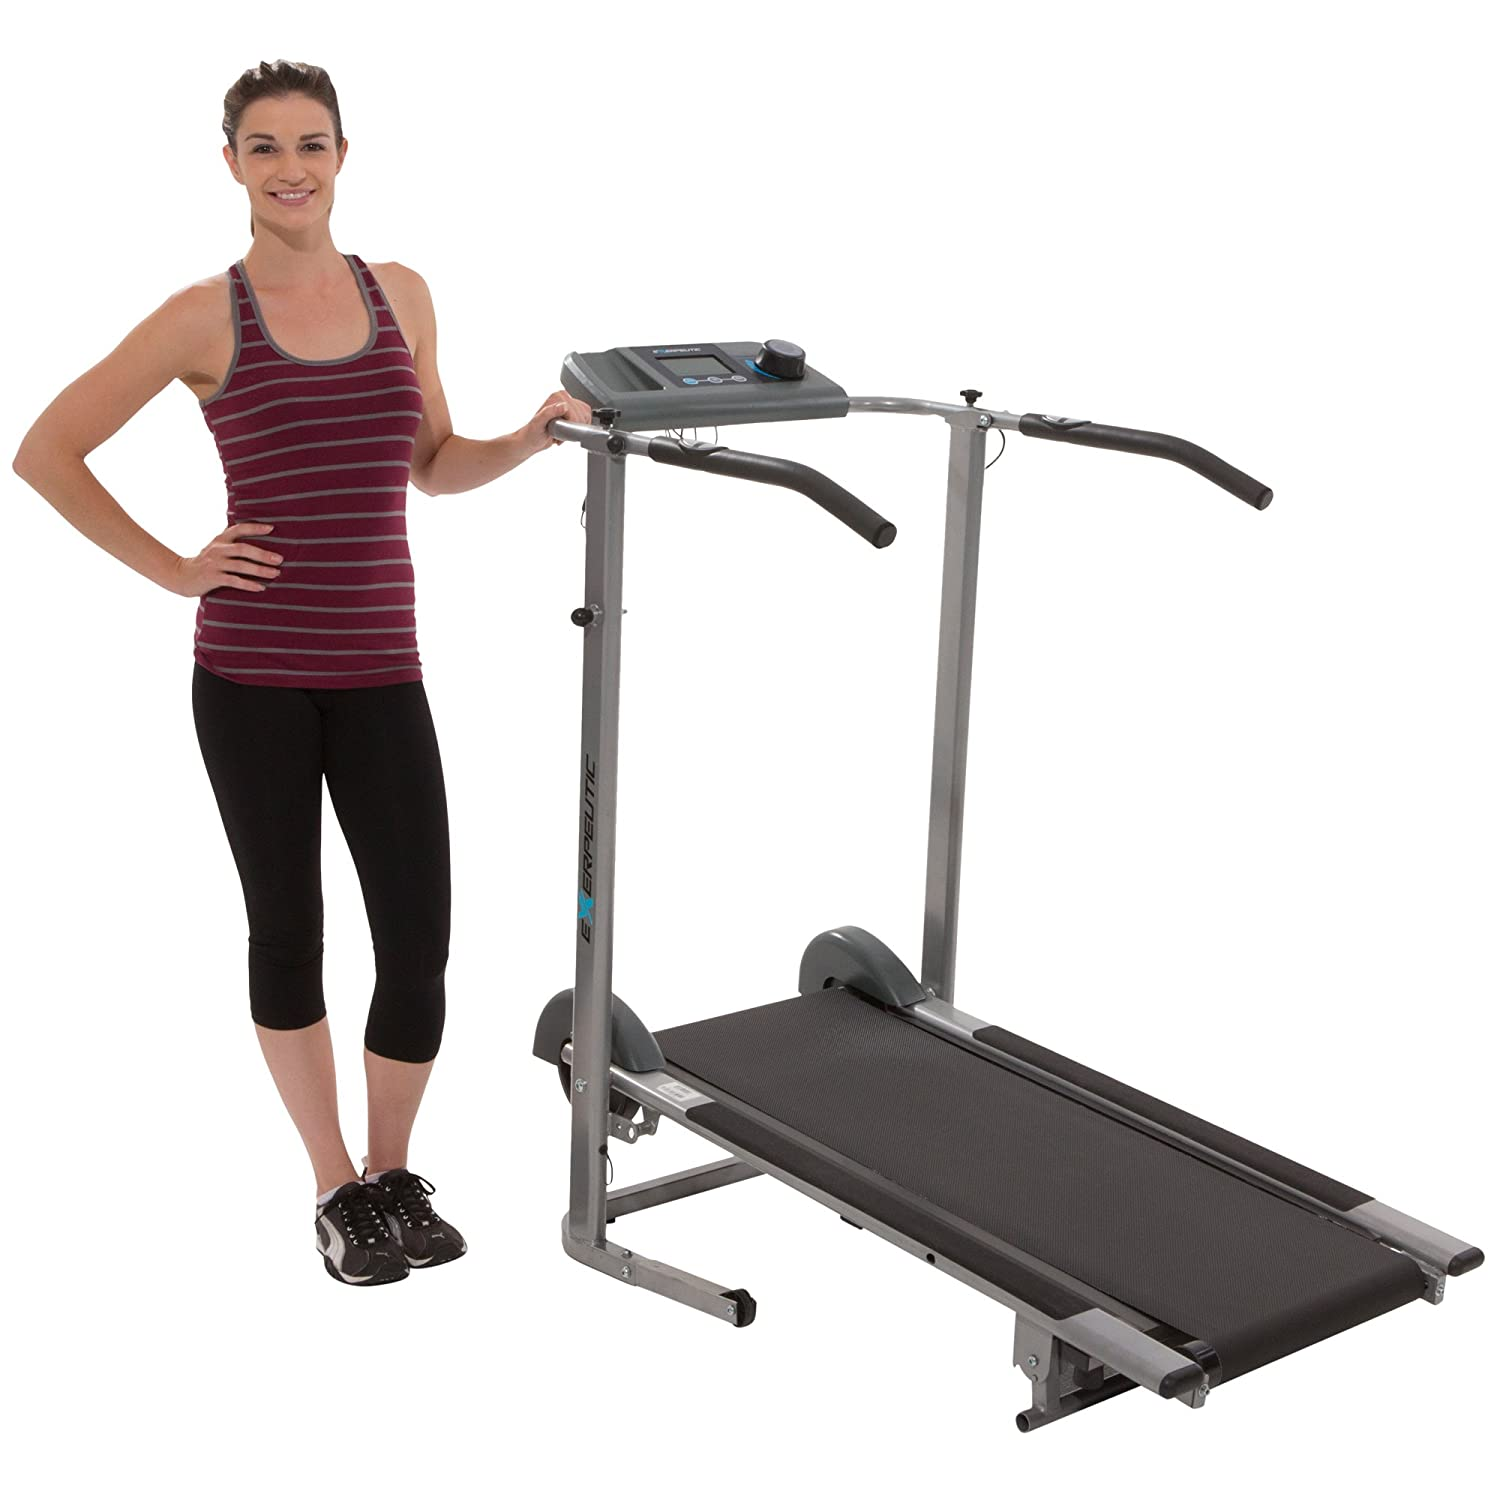 Exerpeutic 100XL Best Manual Treadmill Reviews